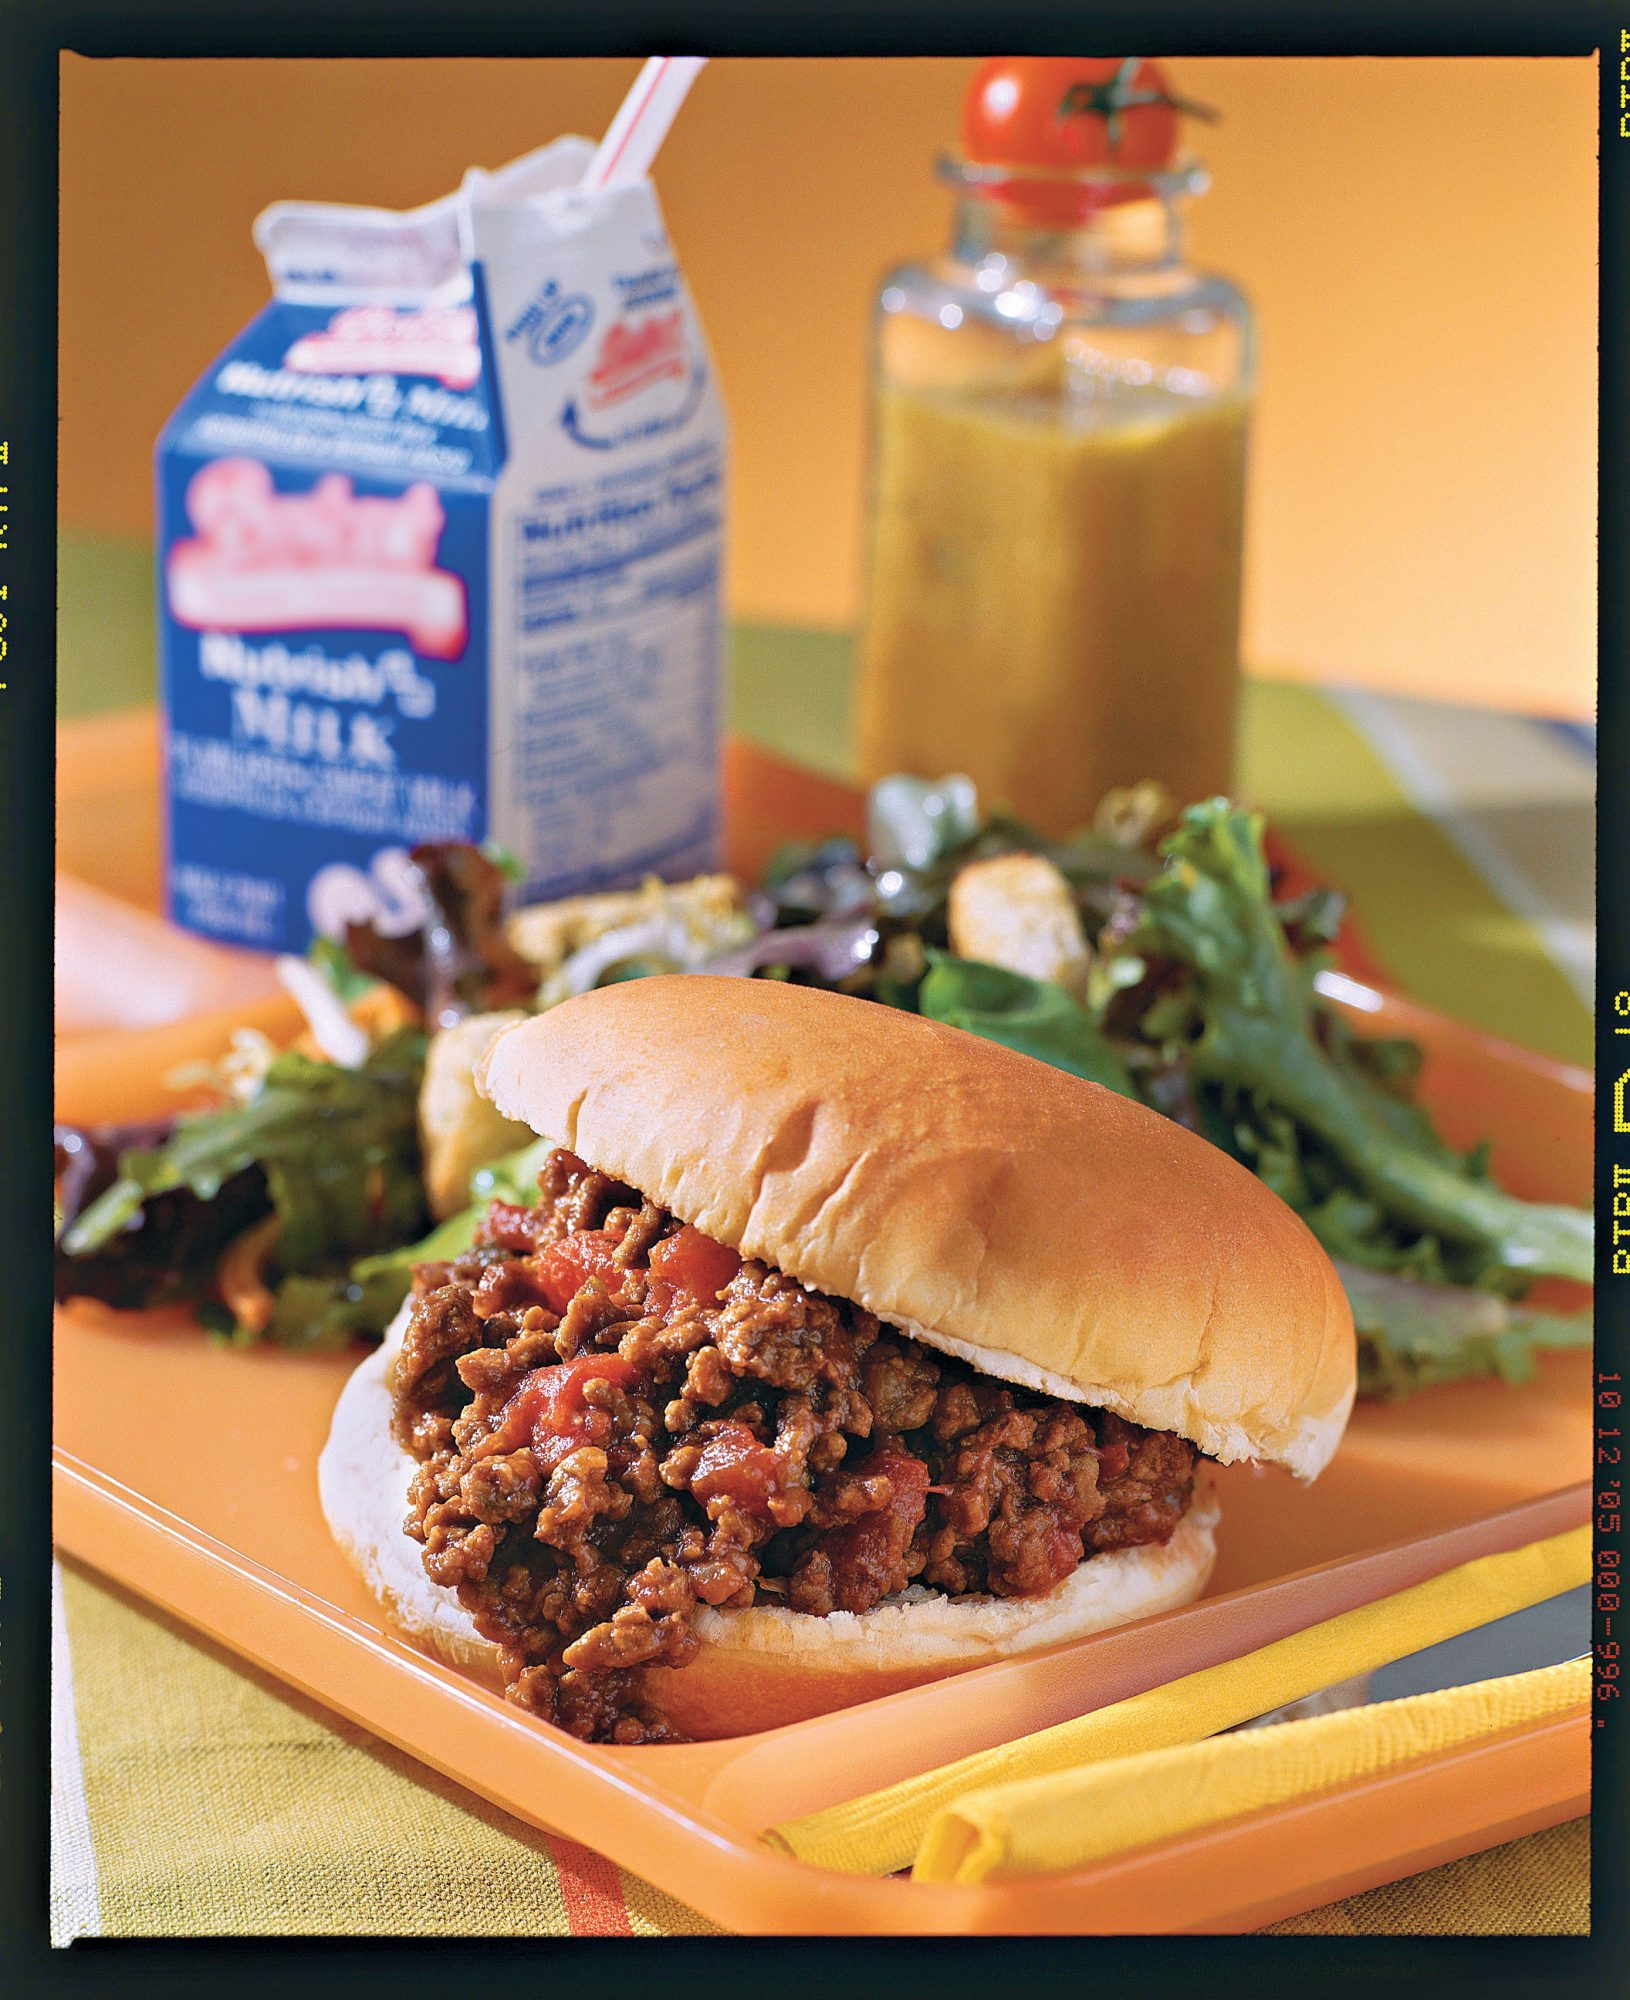 Ground Beef Recipes: Richard's Sloppy Joes